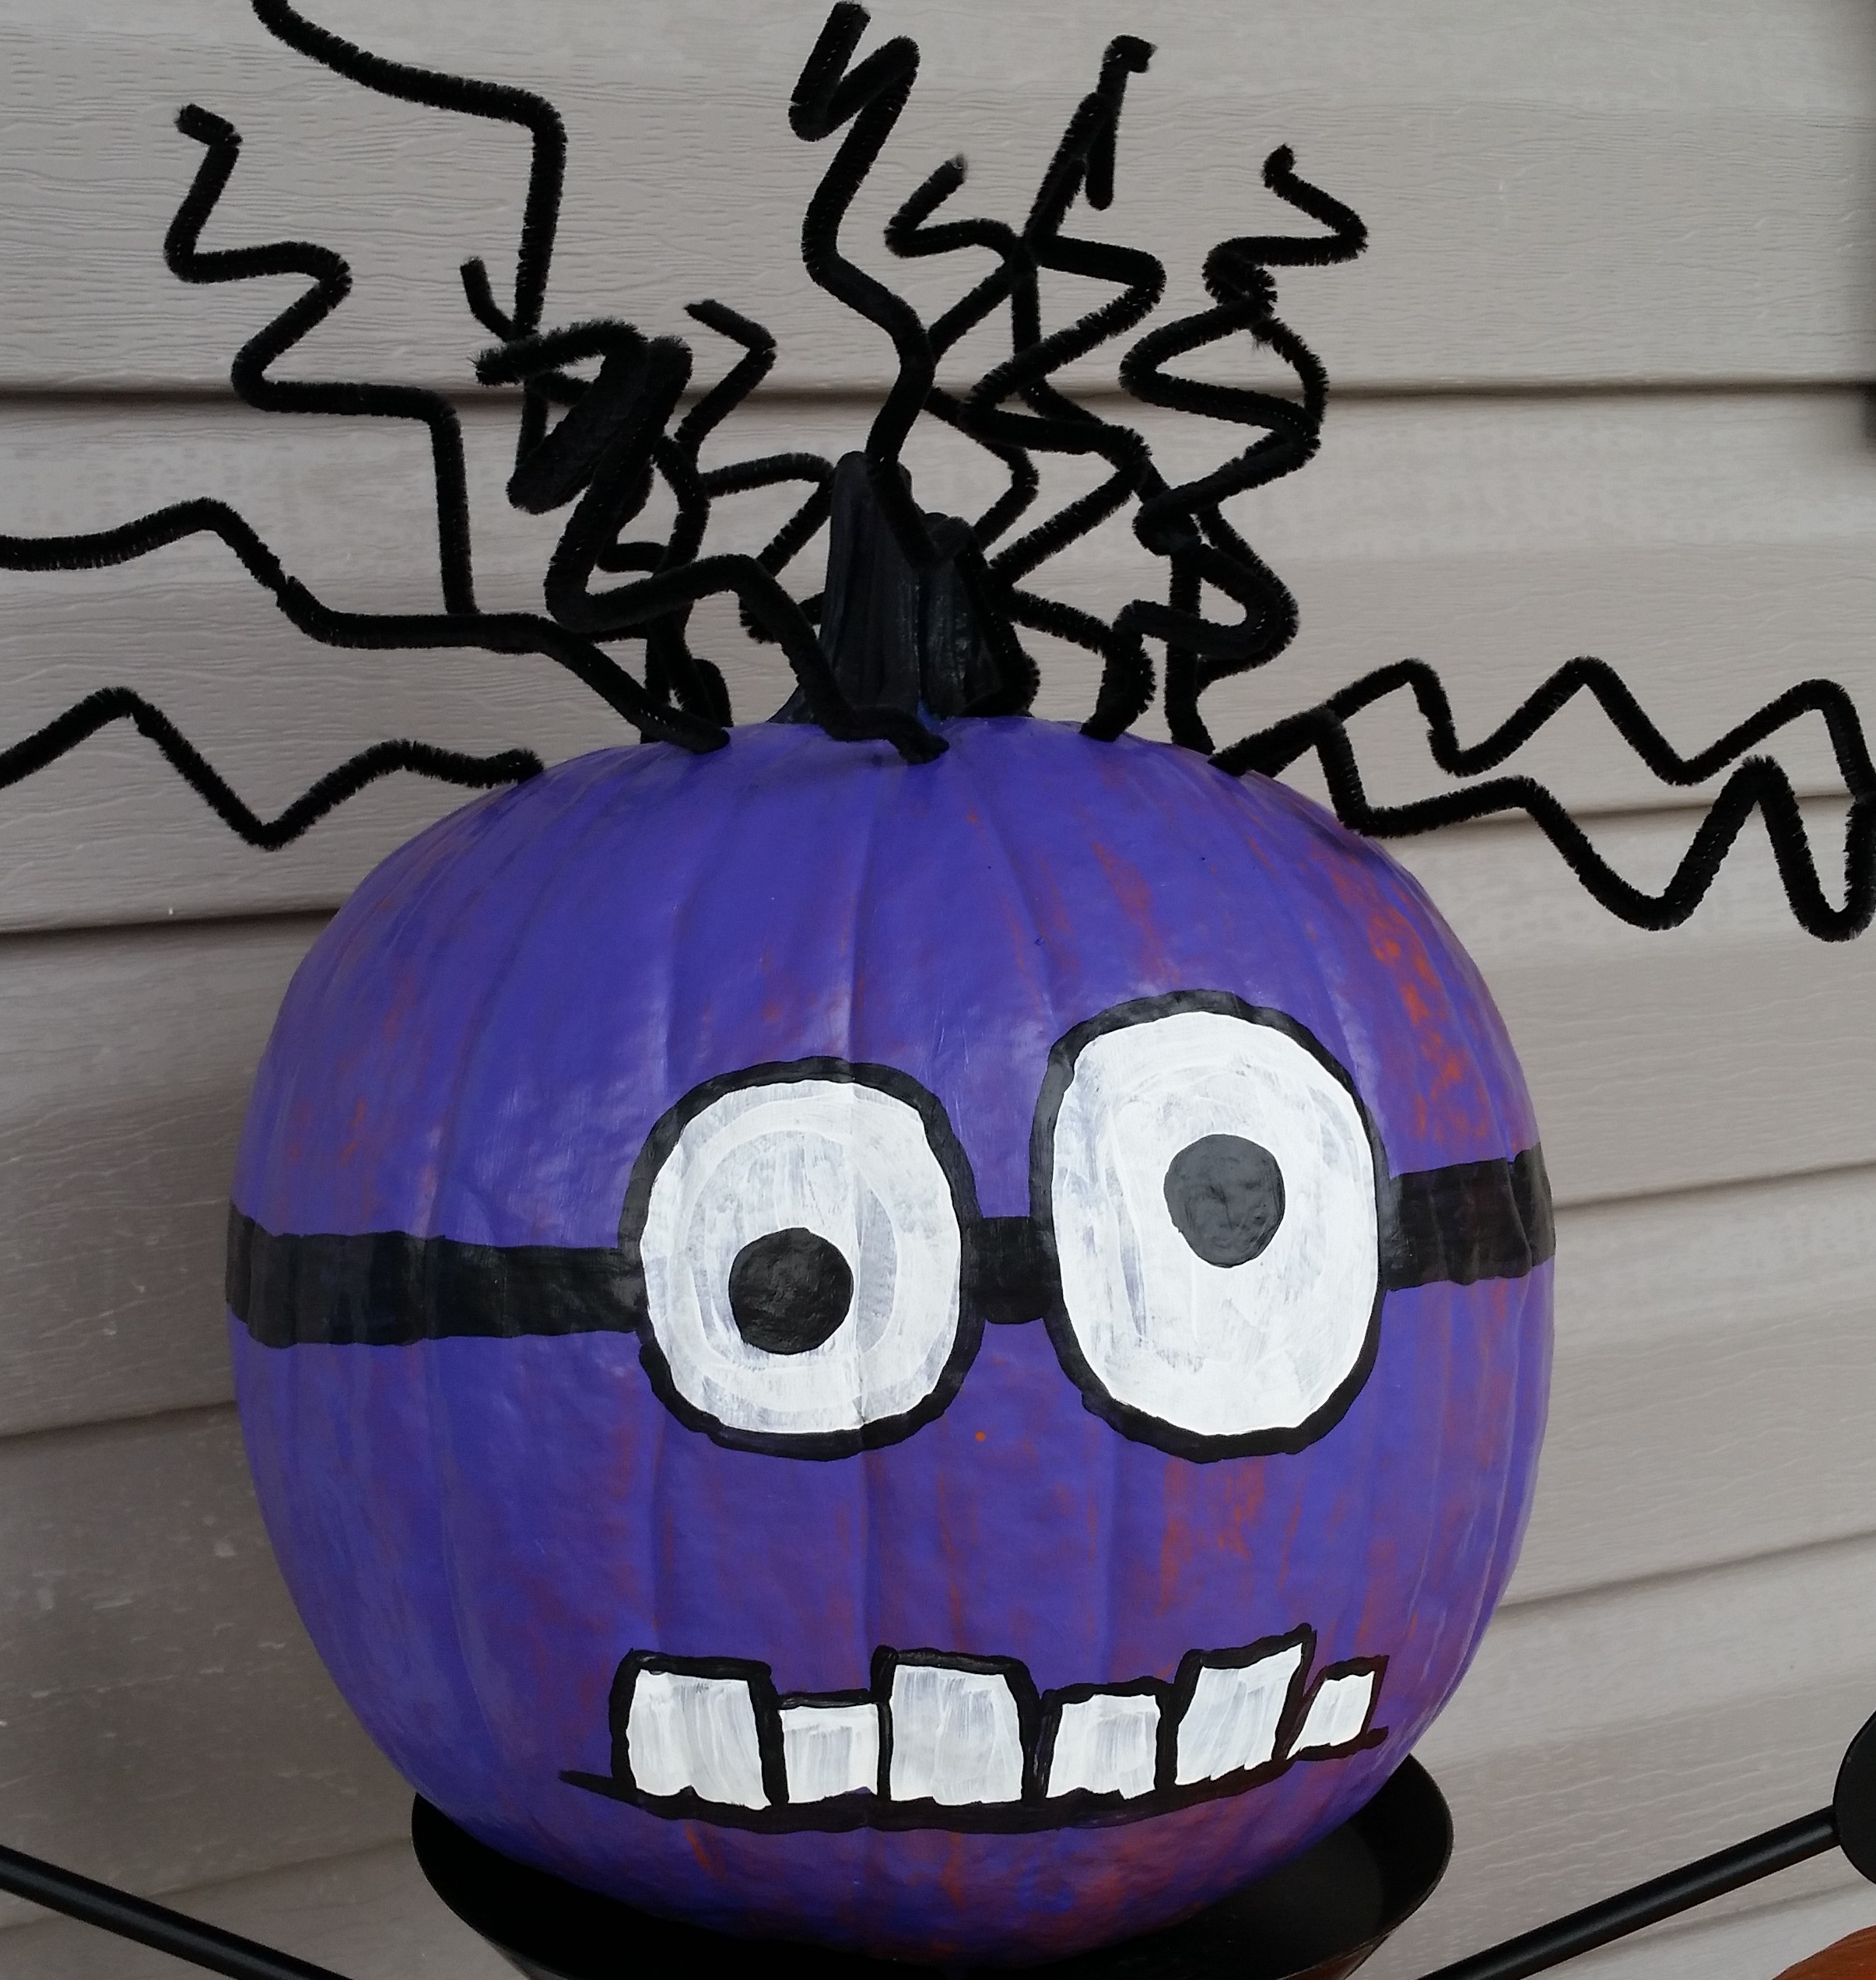 Painted pumpkin with crazy hair